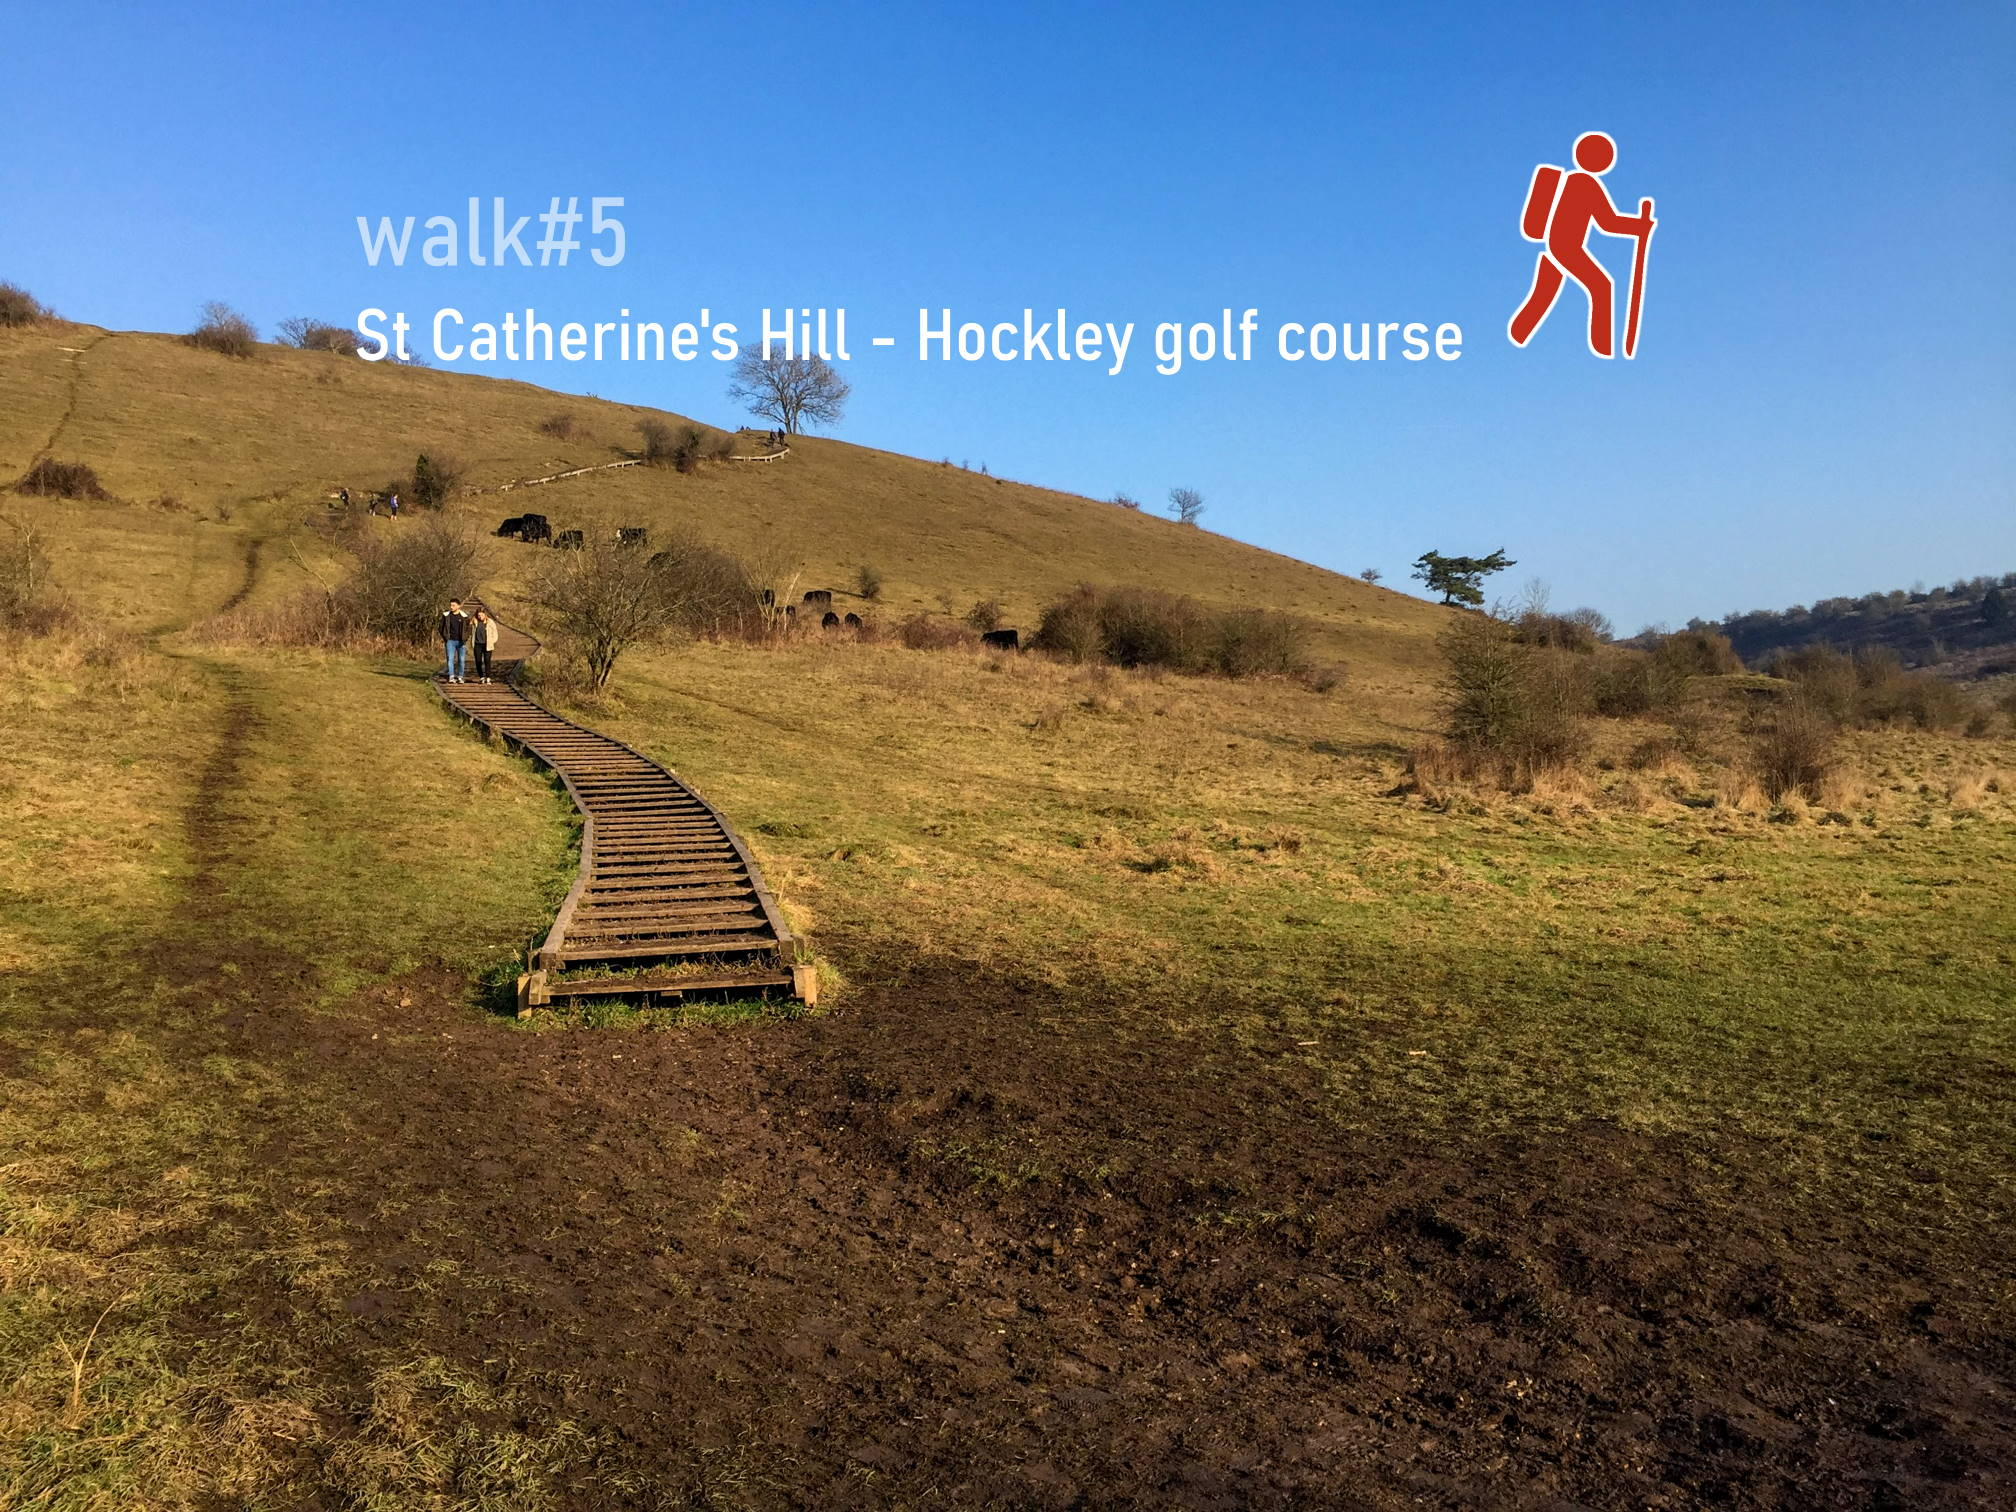 St Catherine's Hill - Hockley golf course